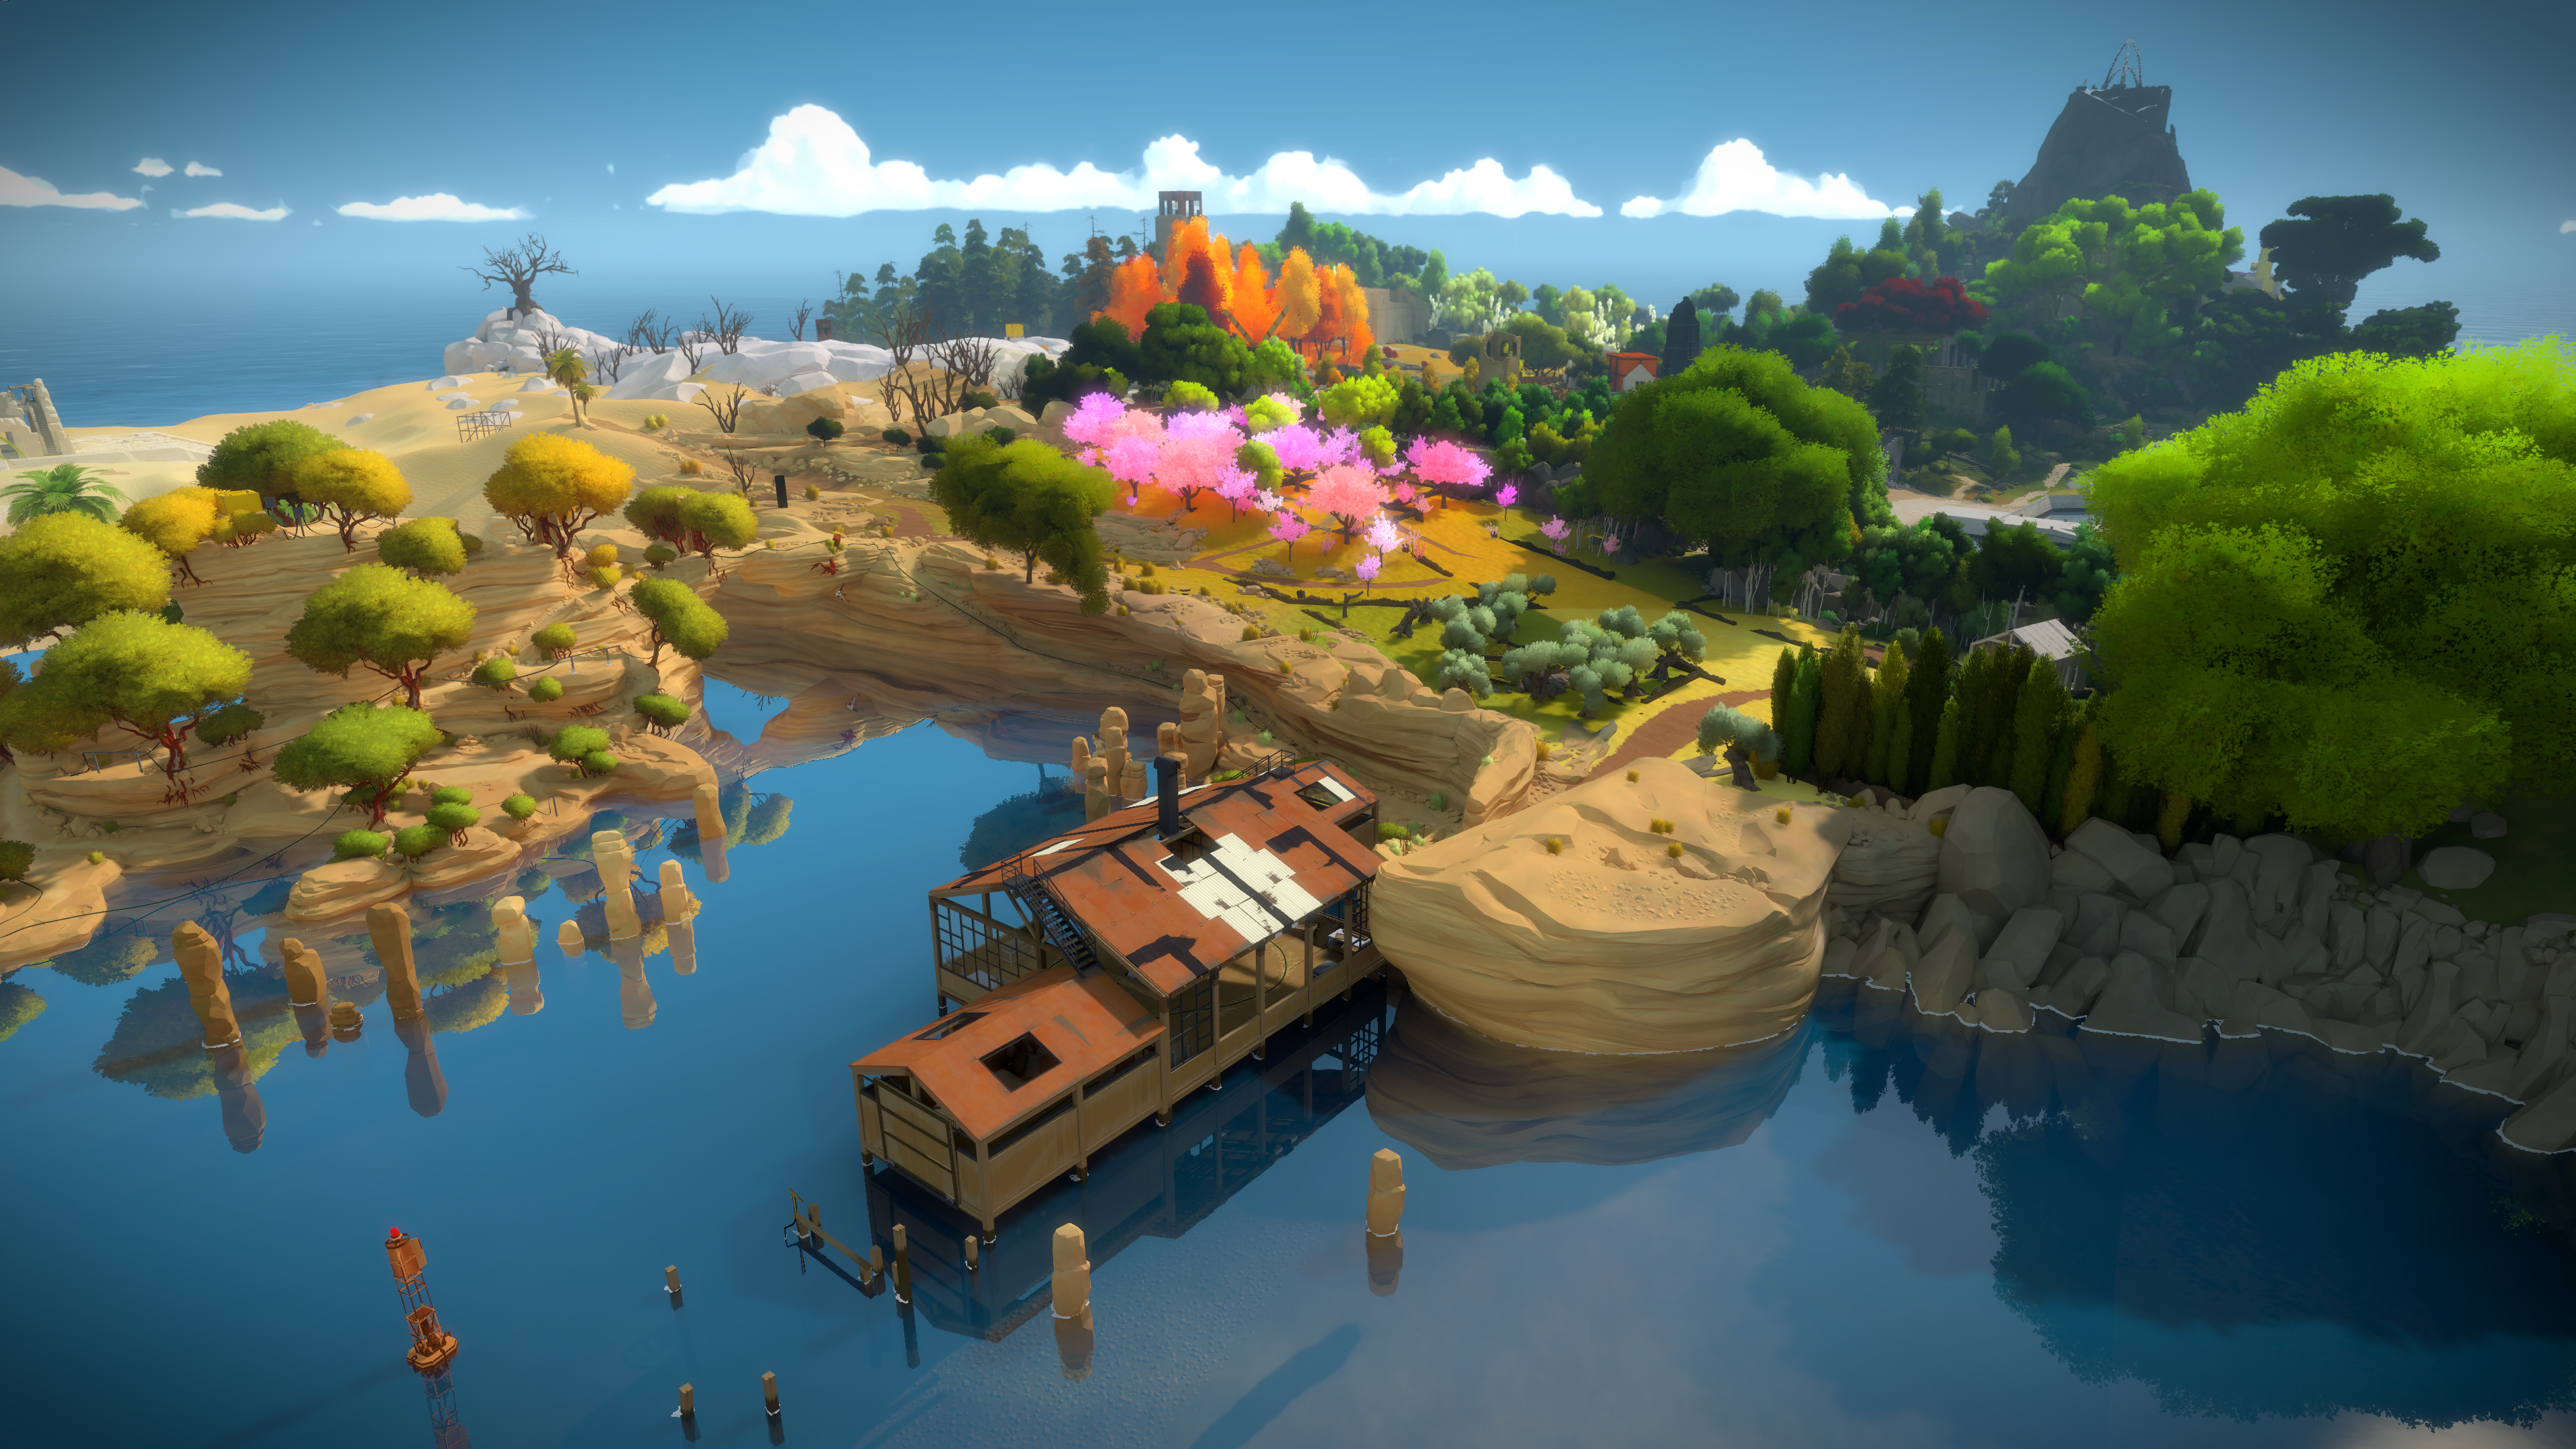 [PS4] The Witness  Shot_2015.09.16__time_13_01_n38